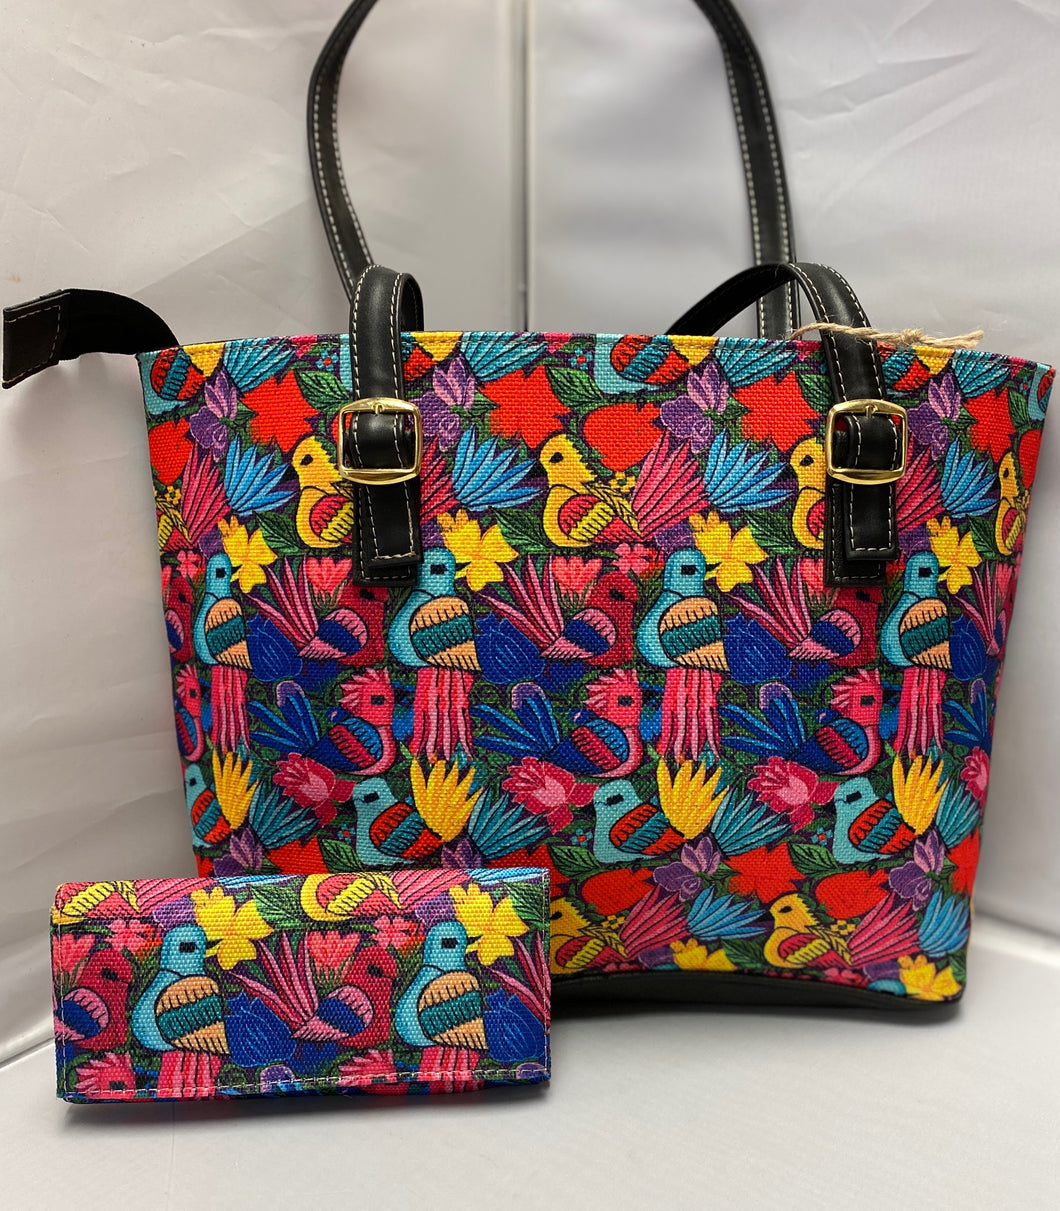 Bird design purse with matching clutch